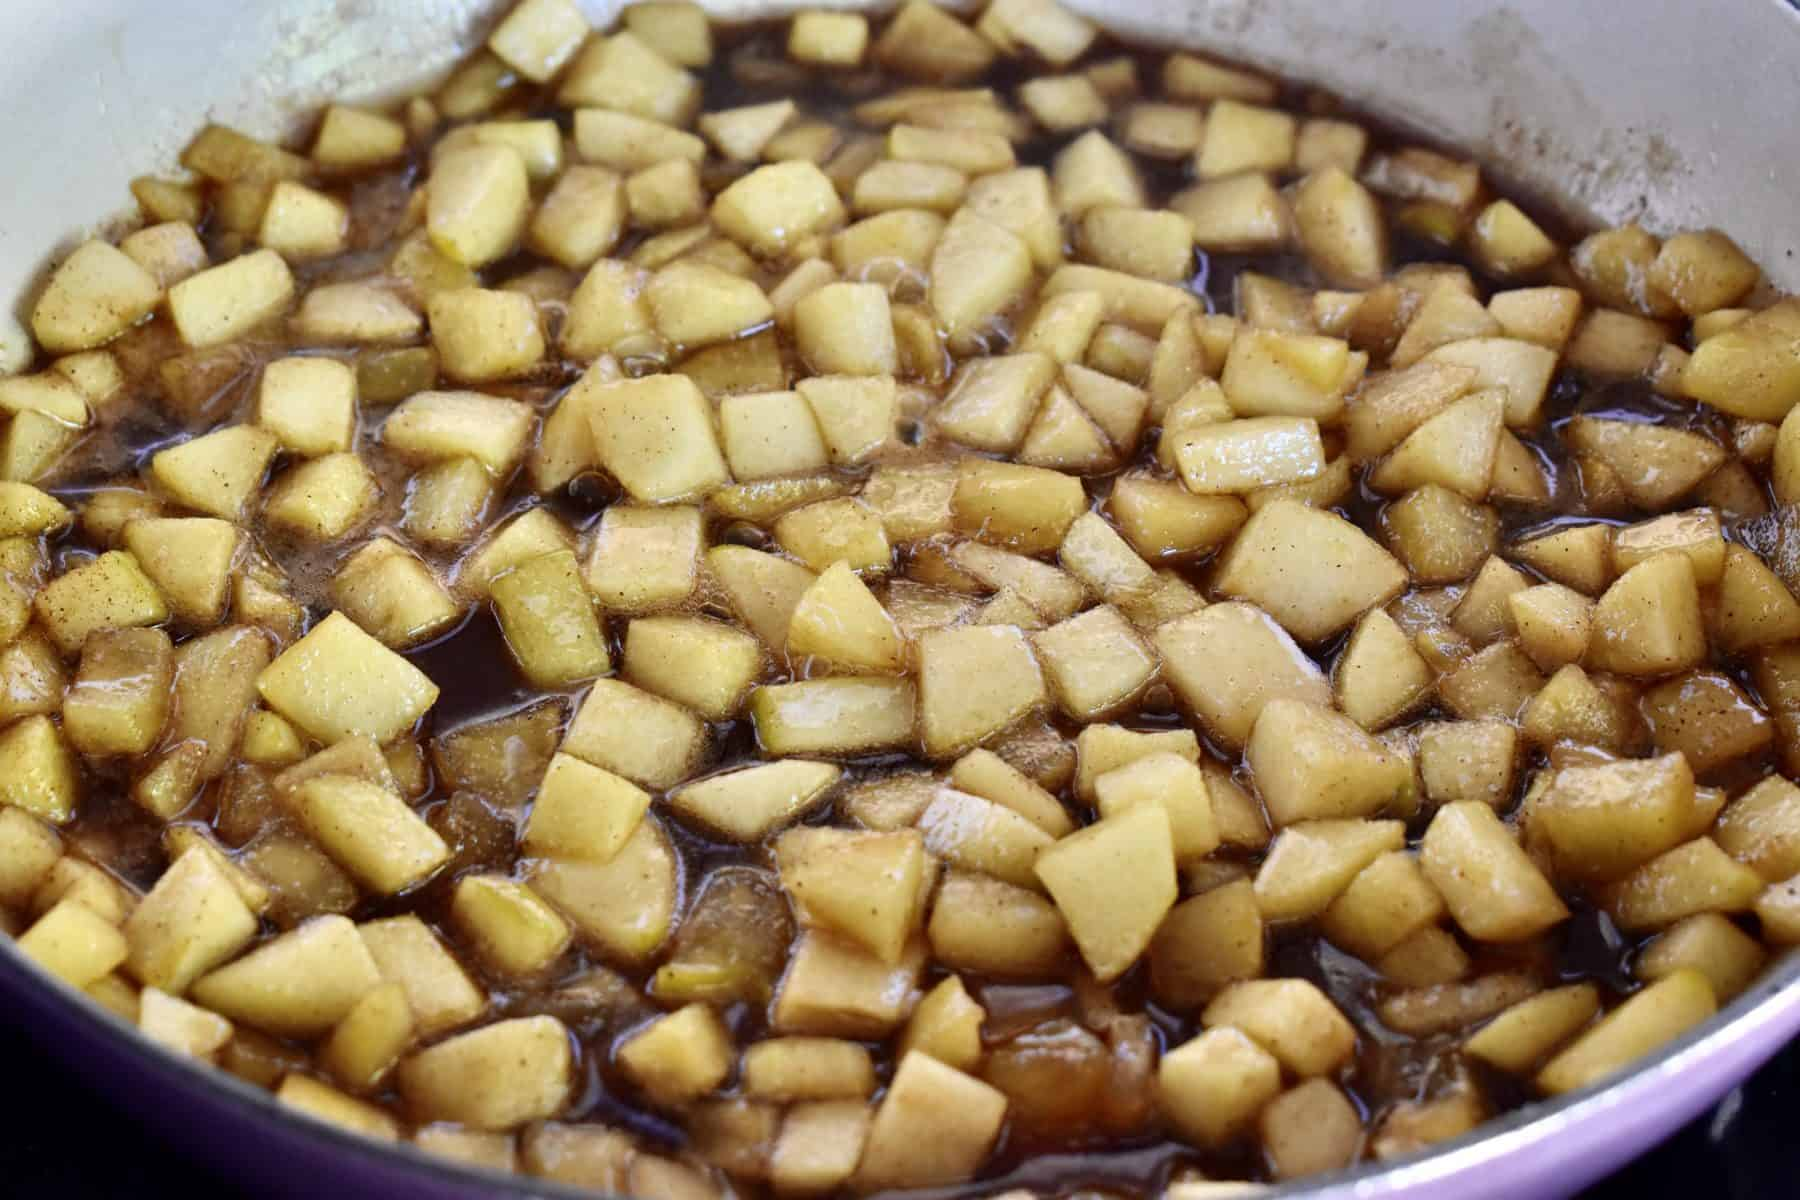 cinnamon apples in a skillet with brown sugar and cinnamon.